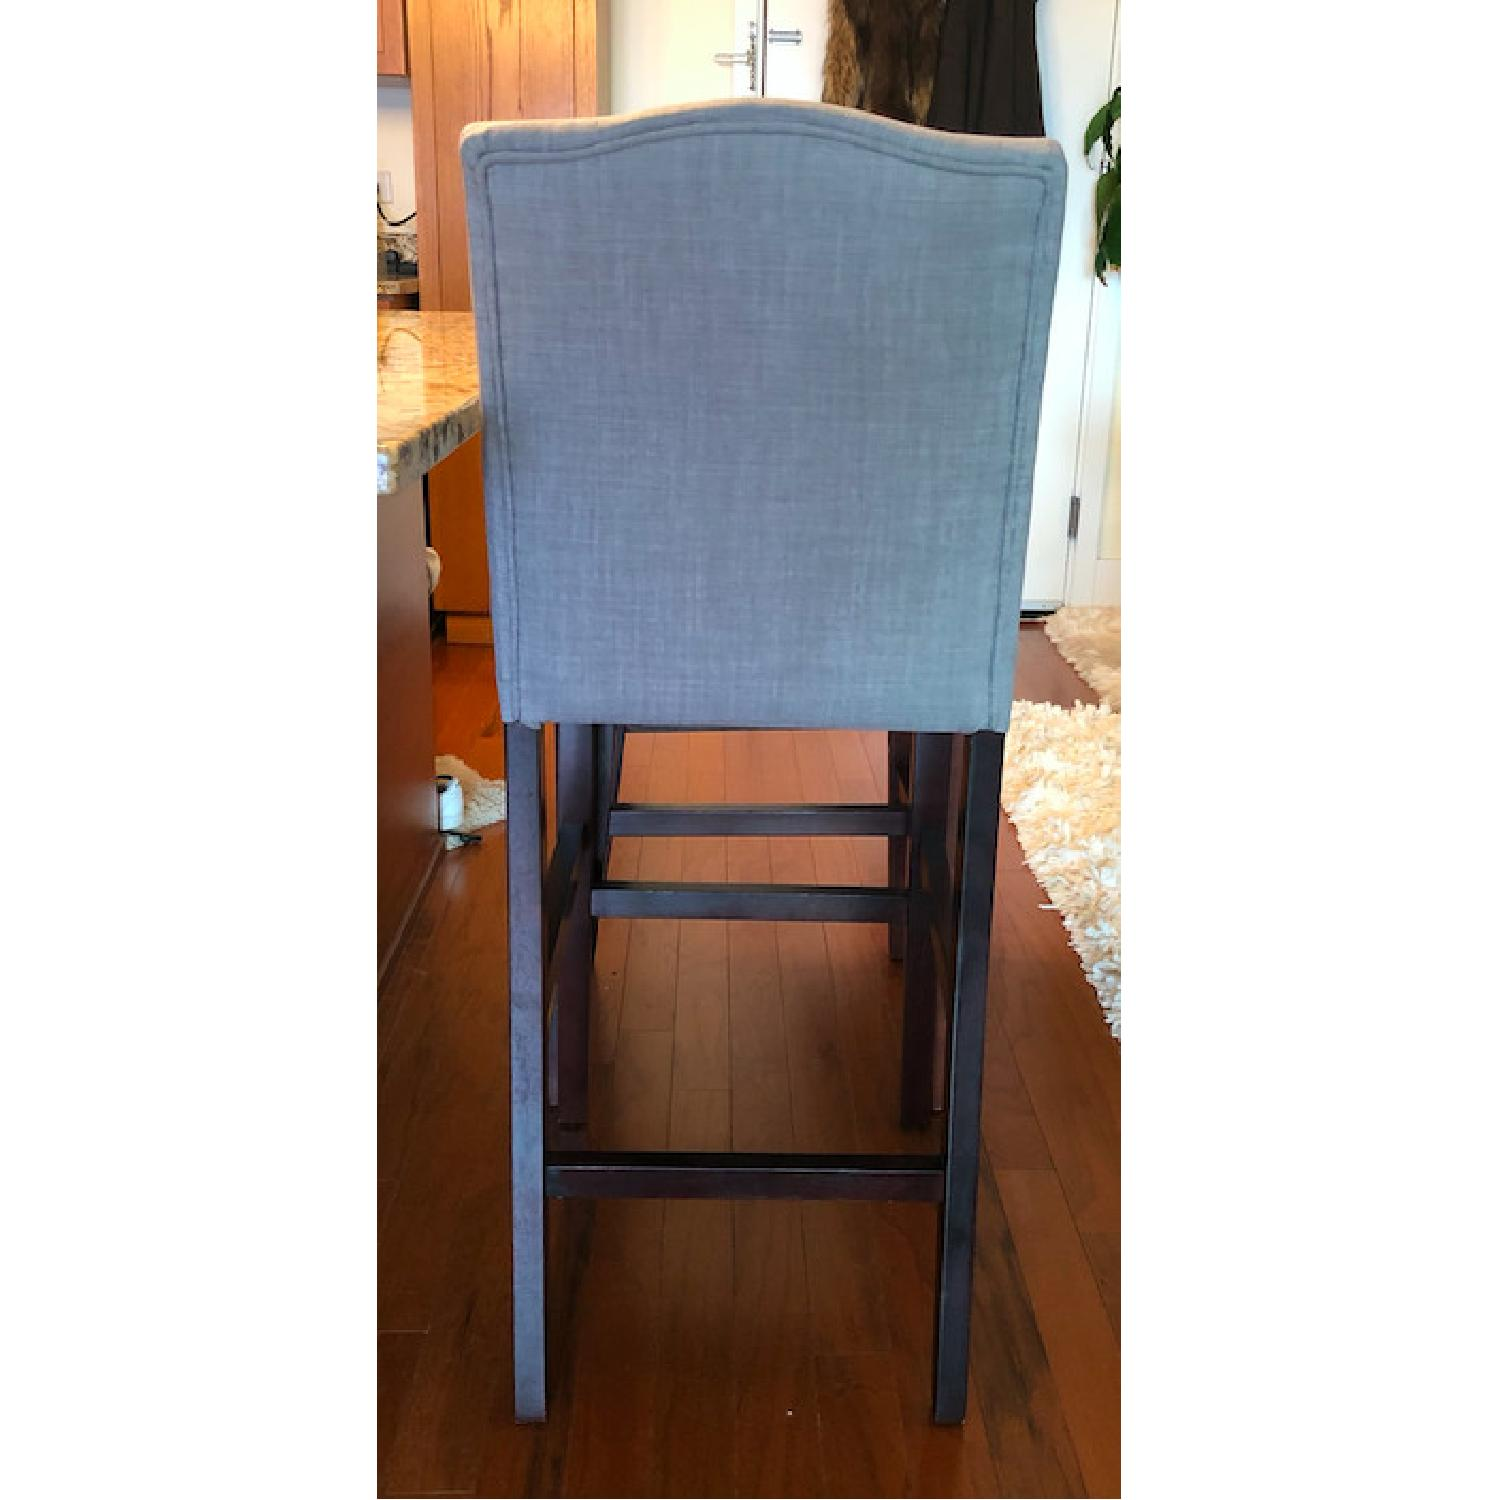 Skyline Furniture Gray Linen Upholstered Nail Button Stools - image-1